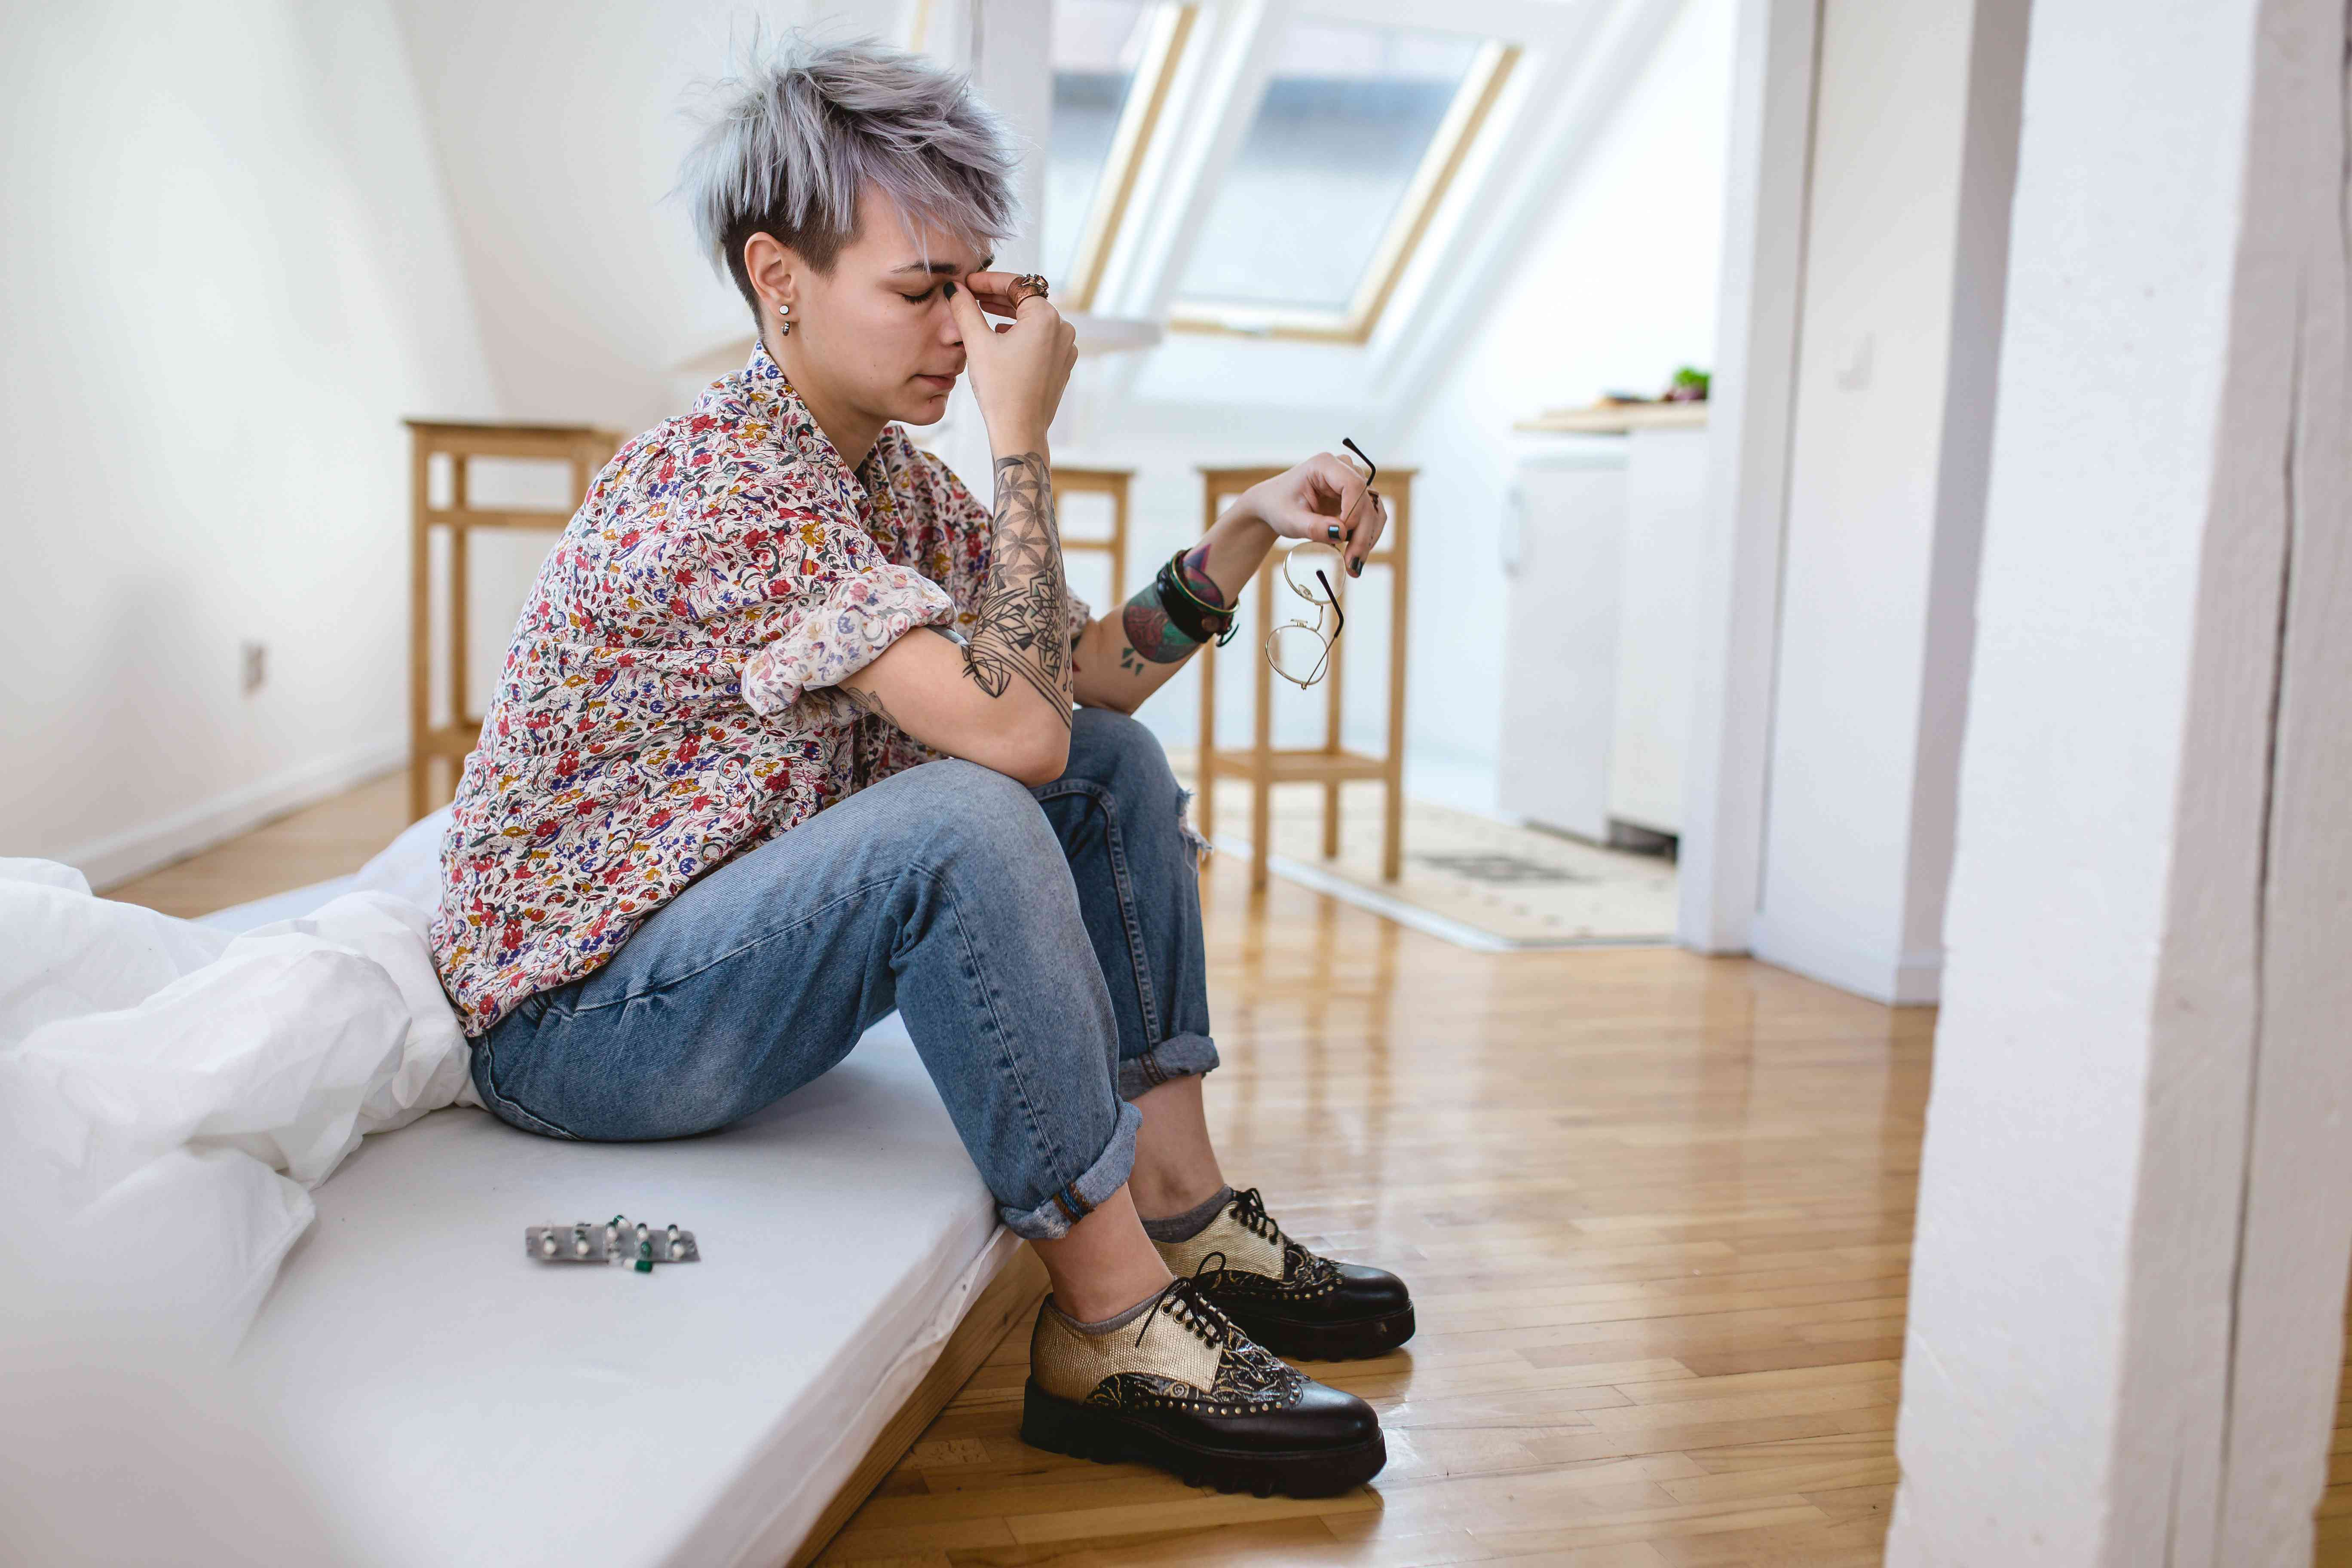 Girl sitting on bed in bad health